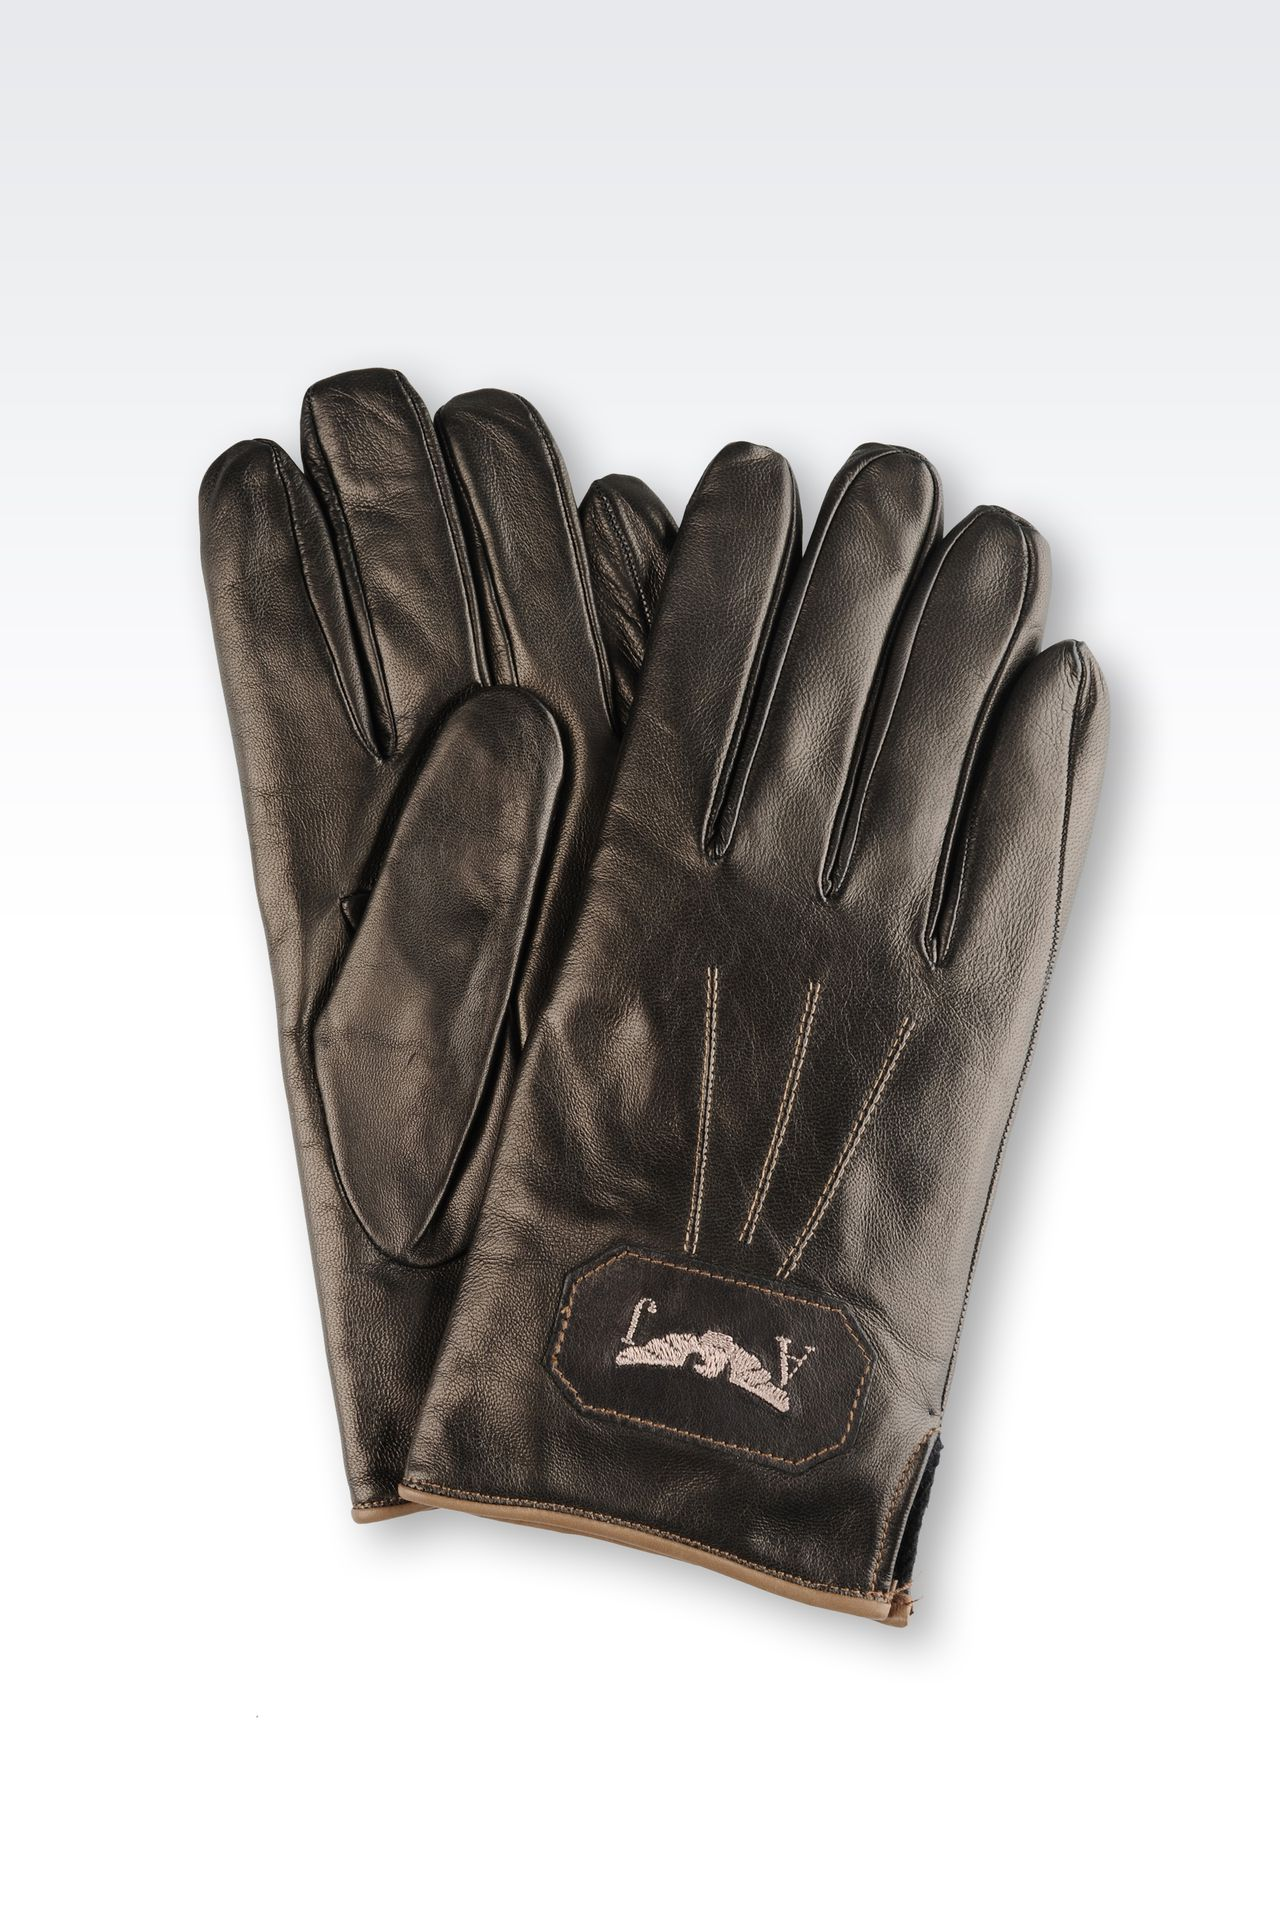 OTHER ACCESSORIES: Gloves Men by Armani - 0